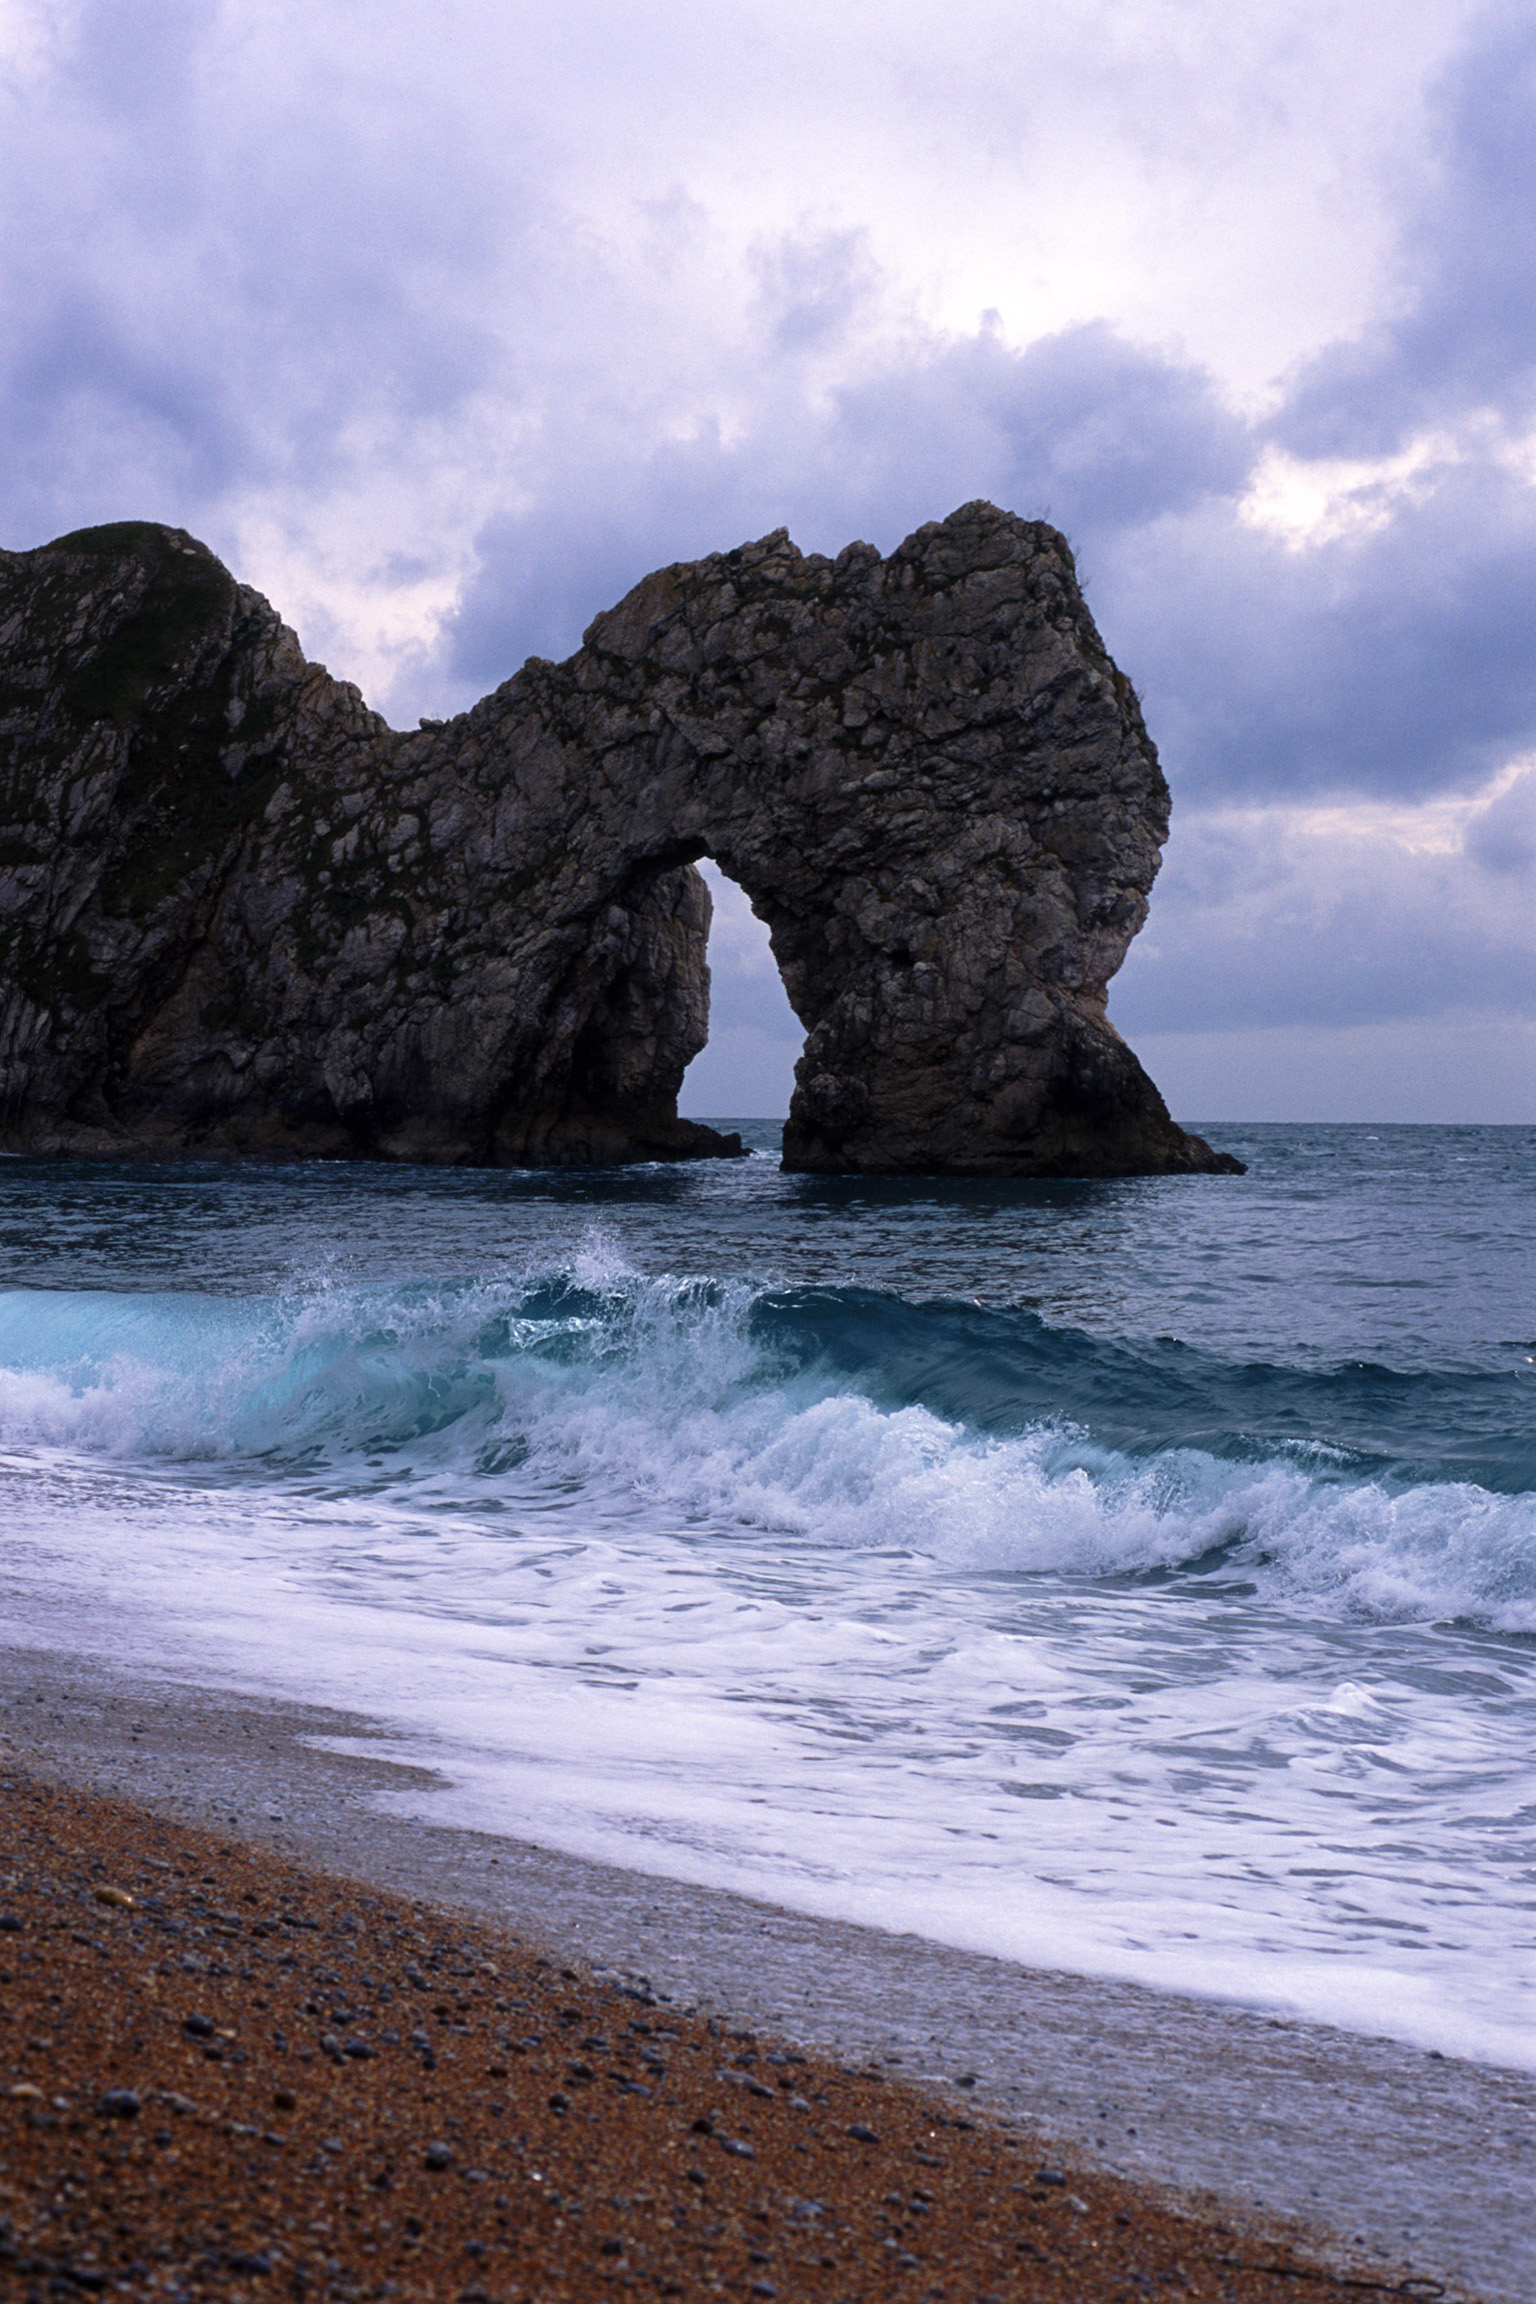 The famous Durdle Door stone arch eroded by the sea from the Jurassic coastline, dorset